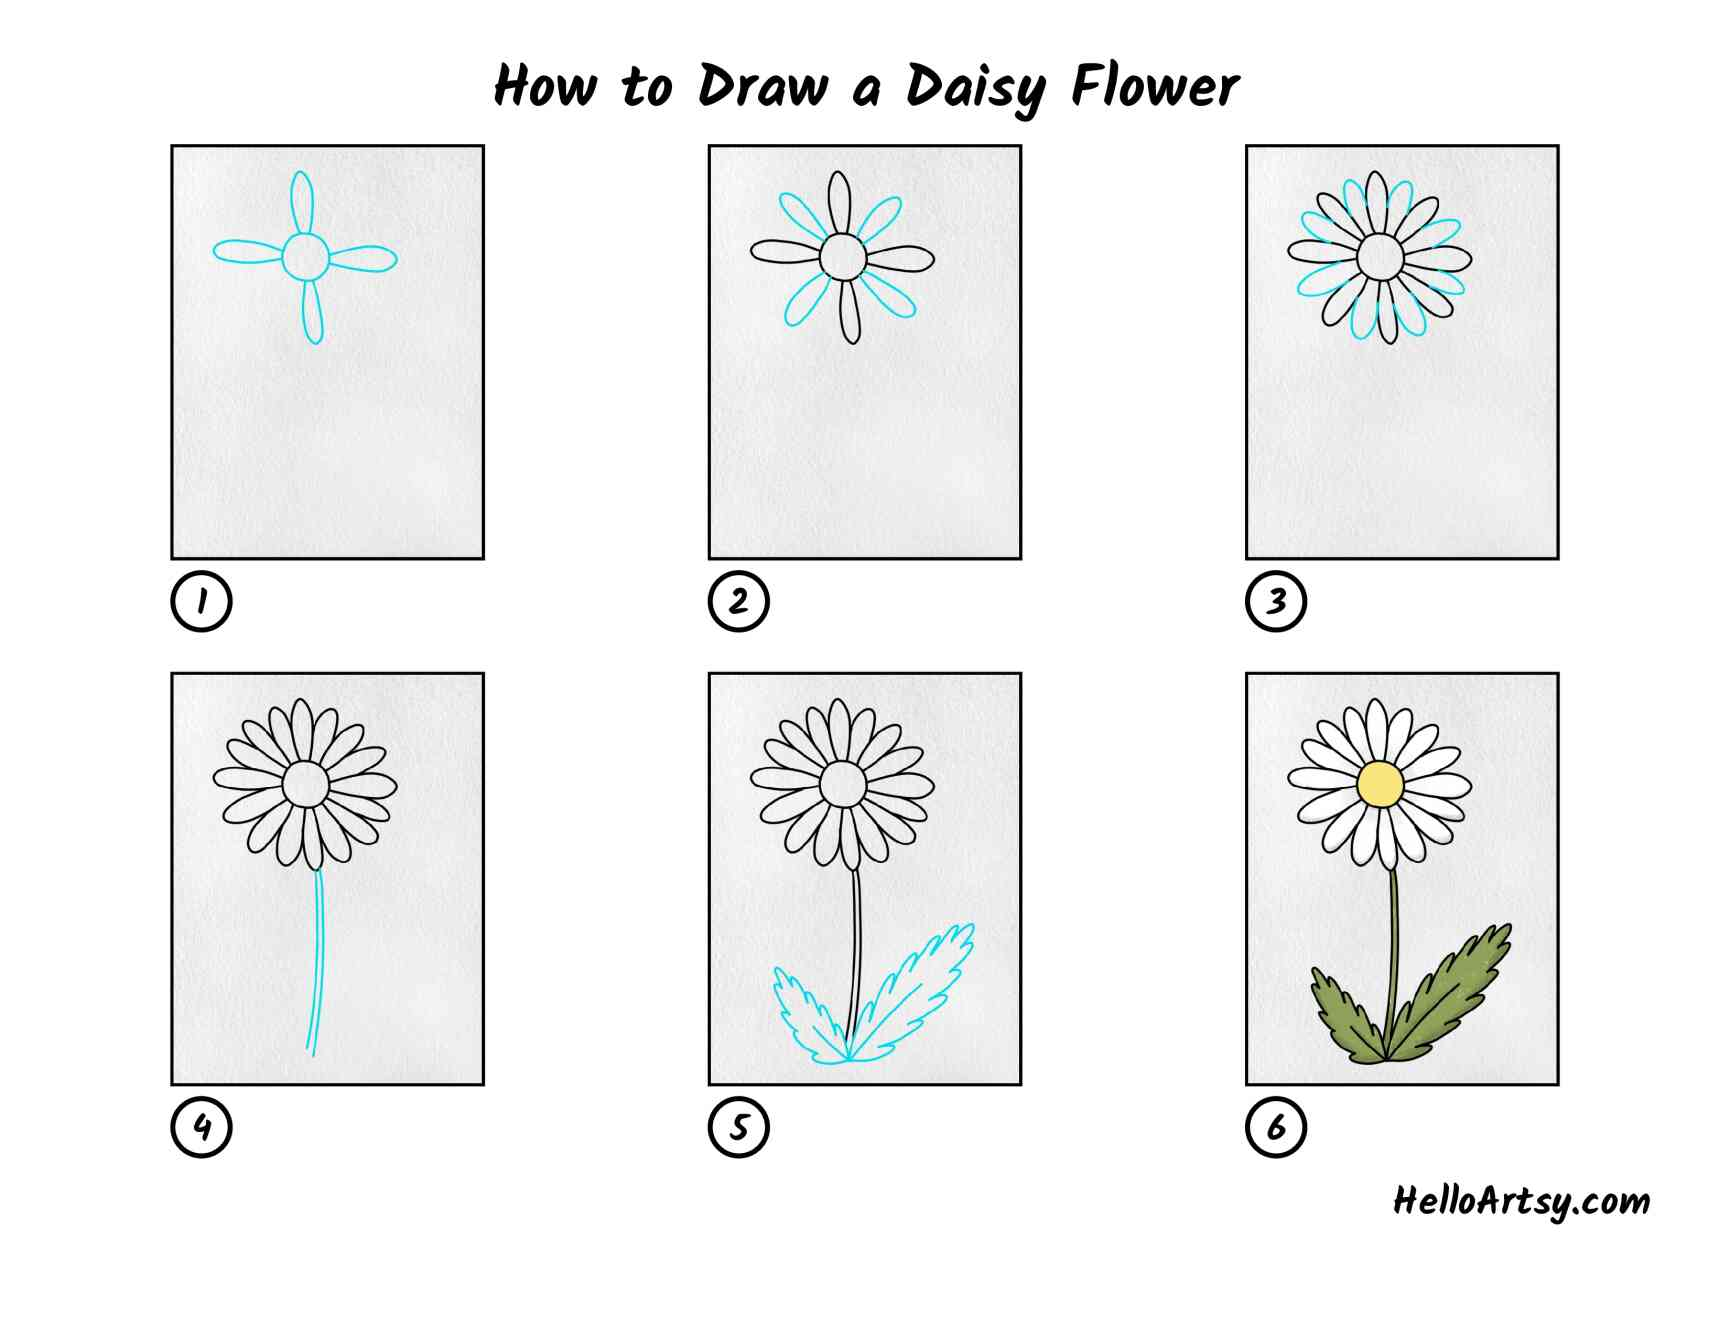 How To Draw A Daisy Flower: All Steps